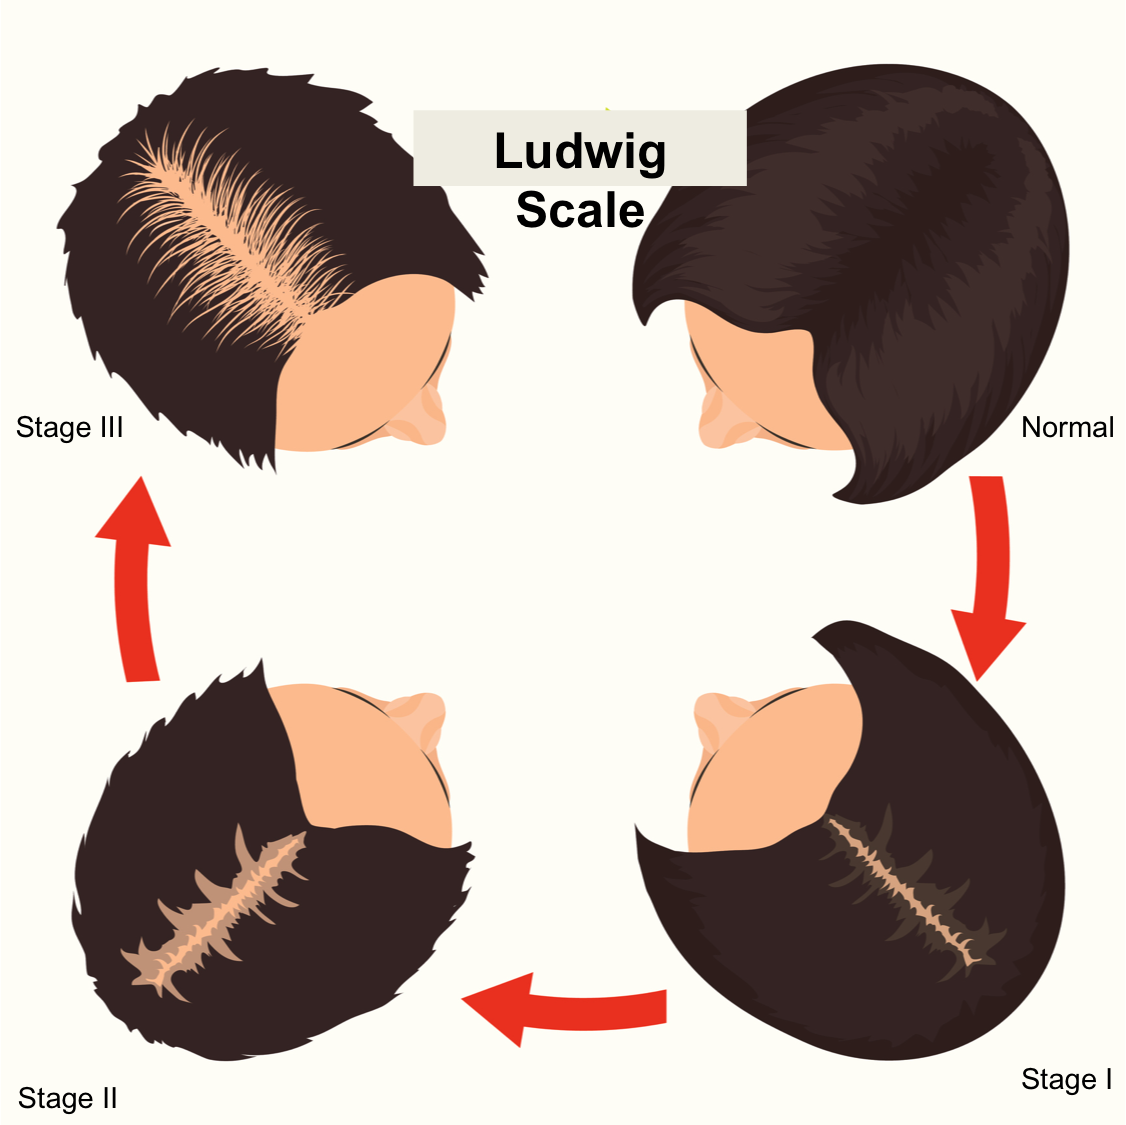 ludwig scale.png